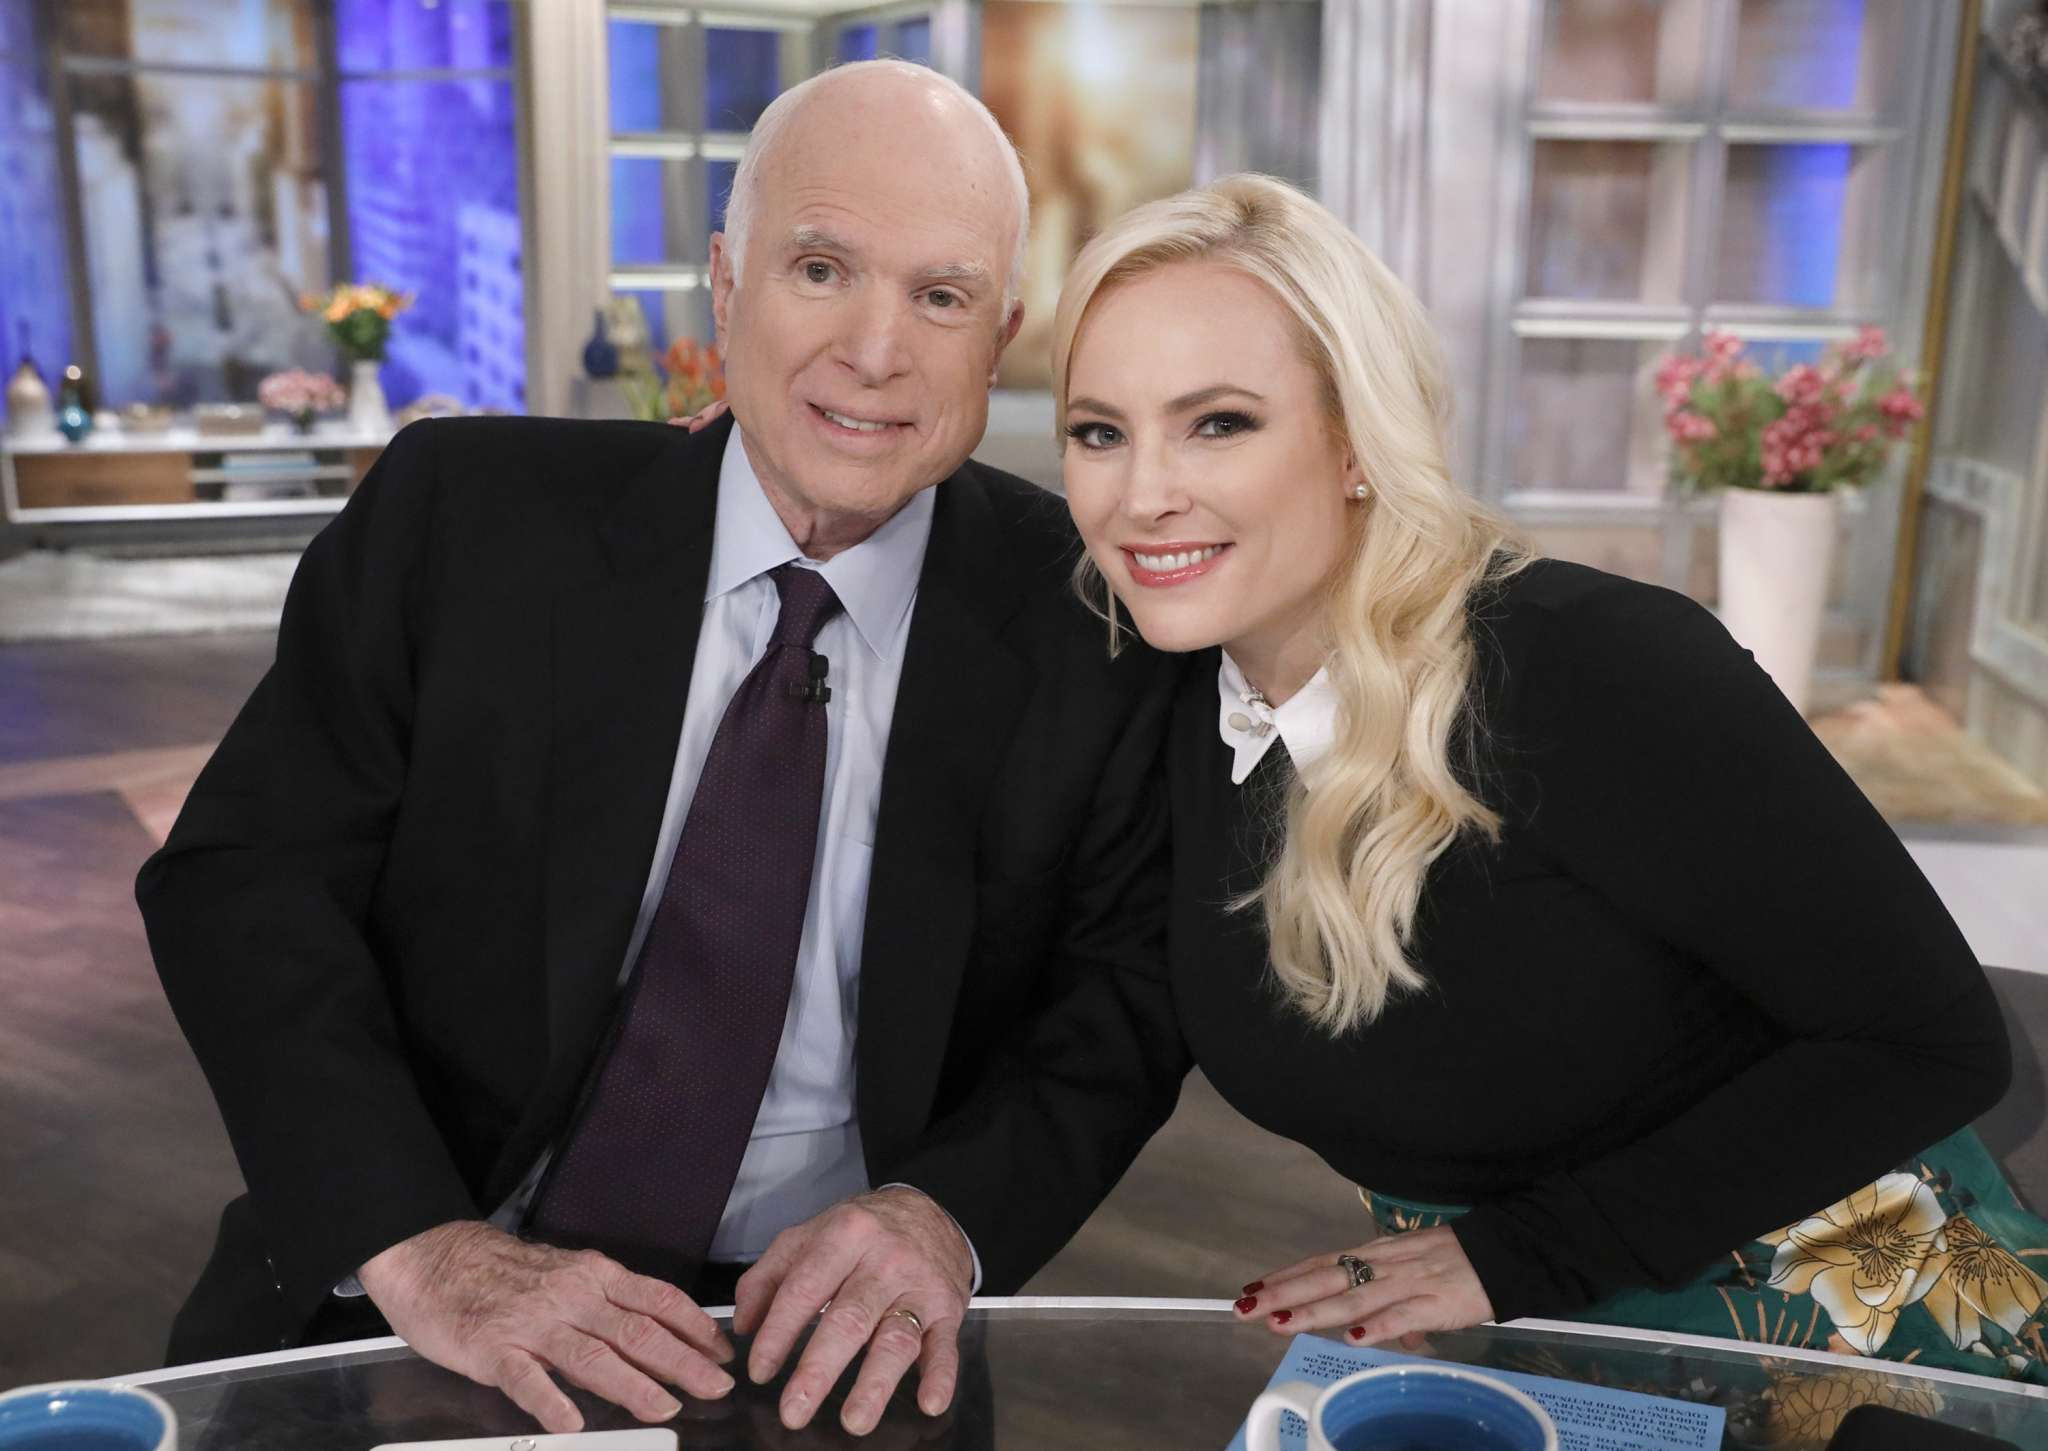 Meghan McCain blasts Trump after he attacks her father on Twitter